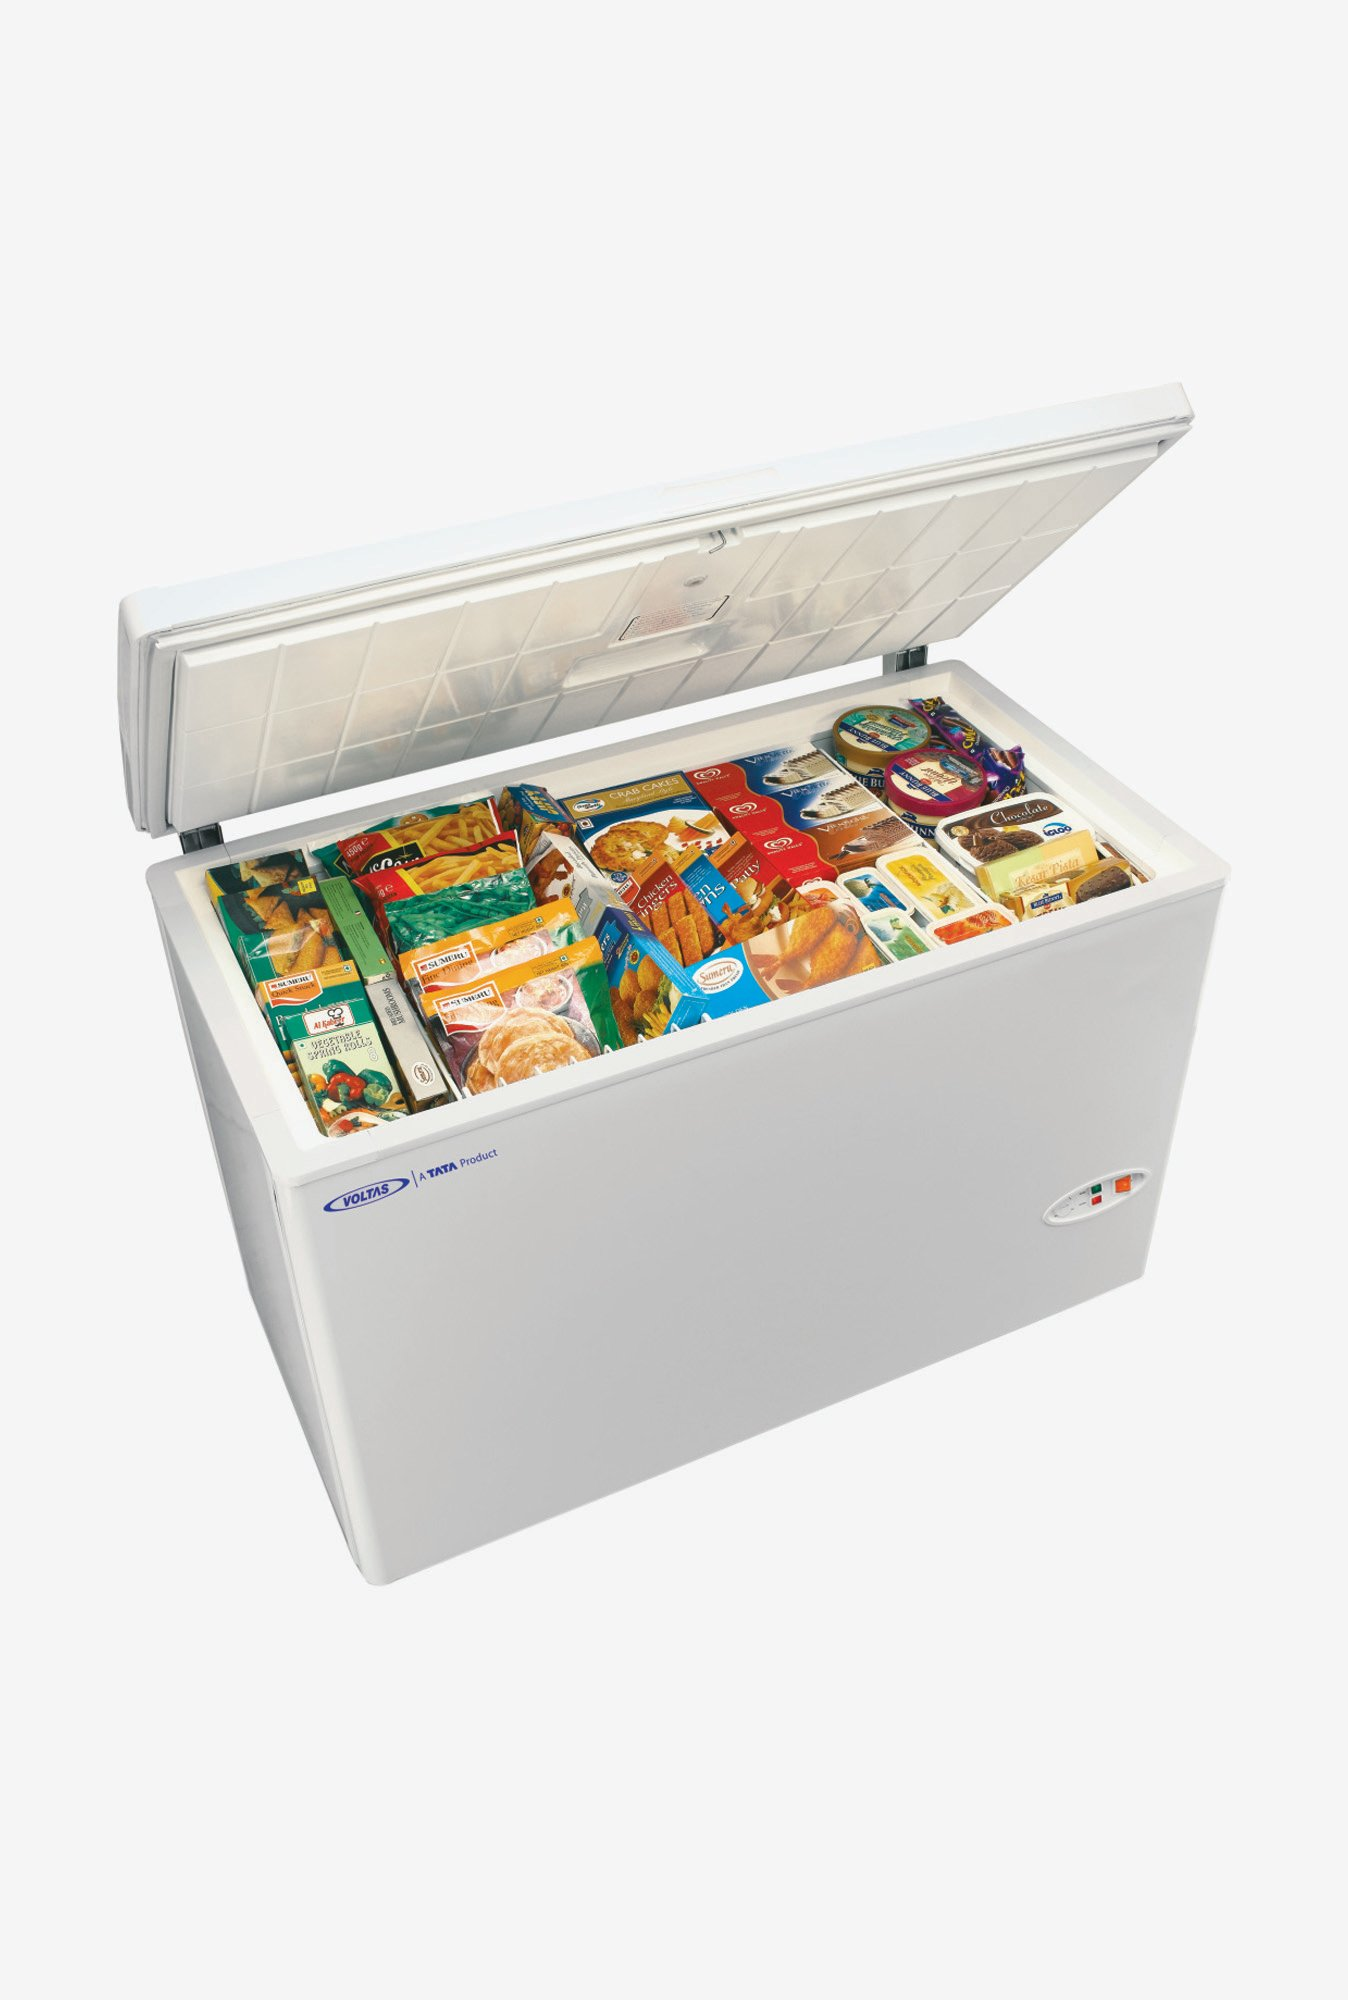 drawers single refrigerators zm appliances electrolux hov drawer refrigerator collection icon counter qv kitchen under refrigeration